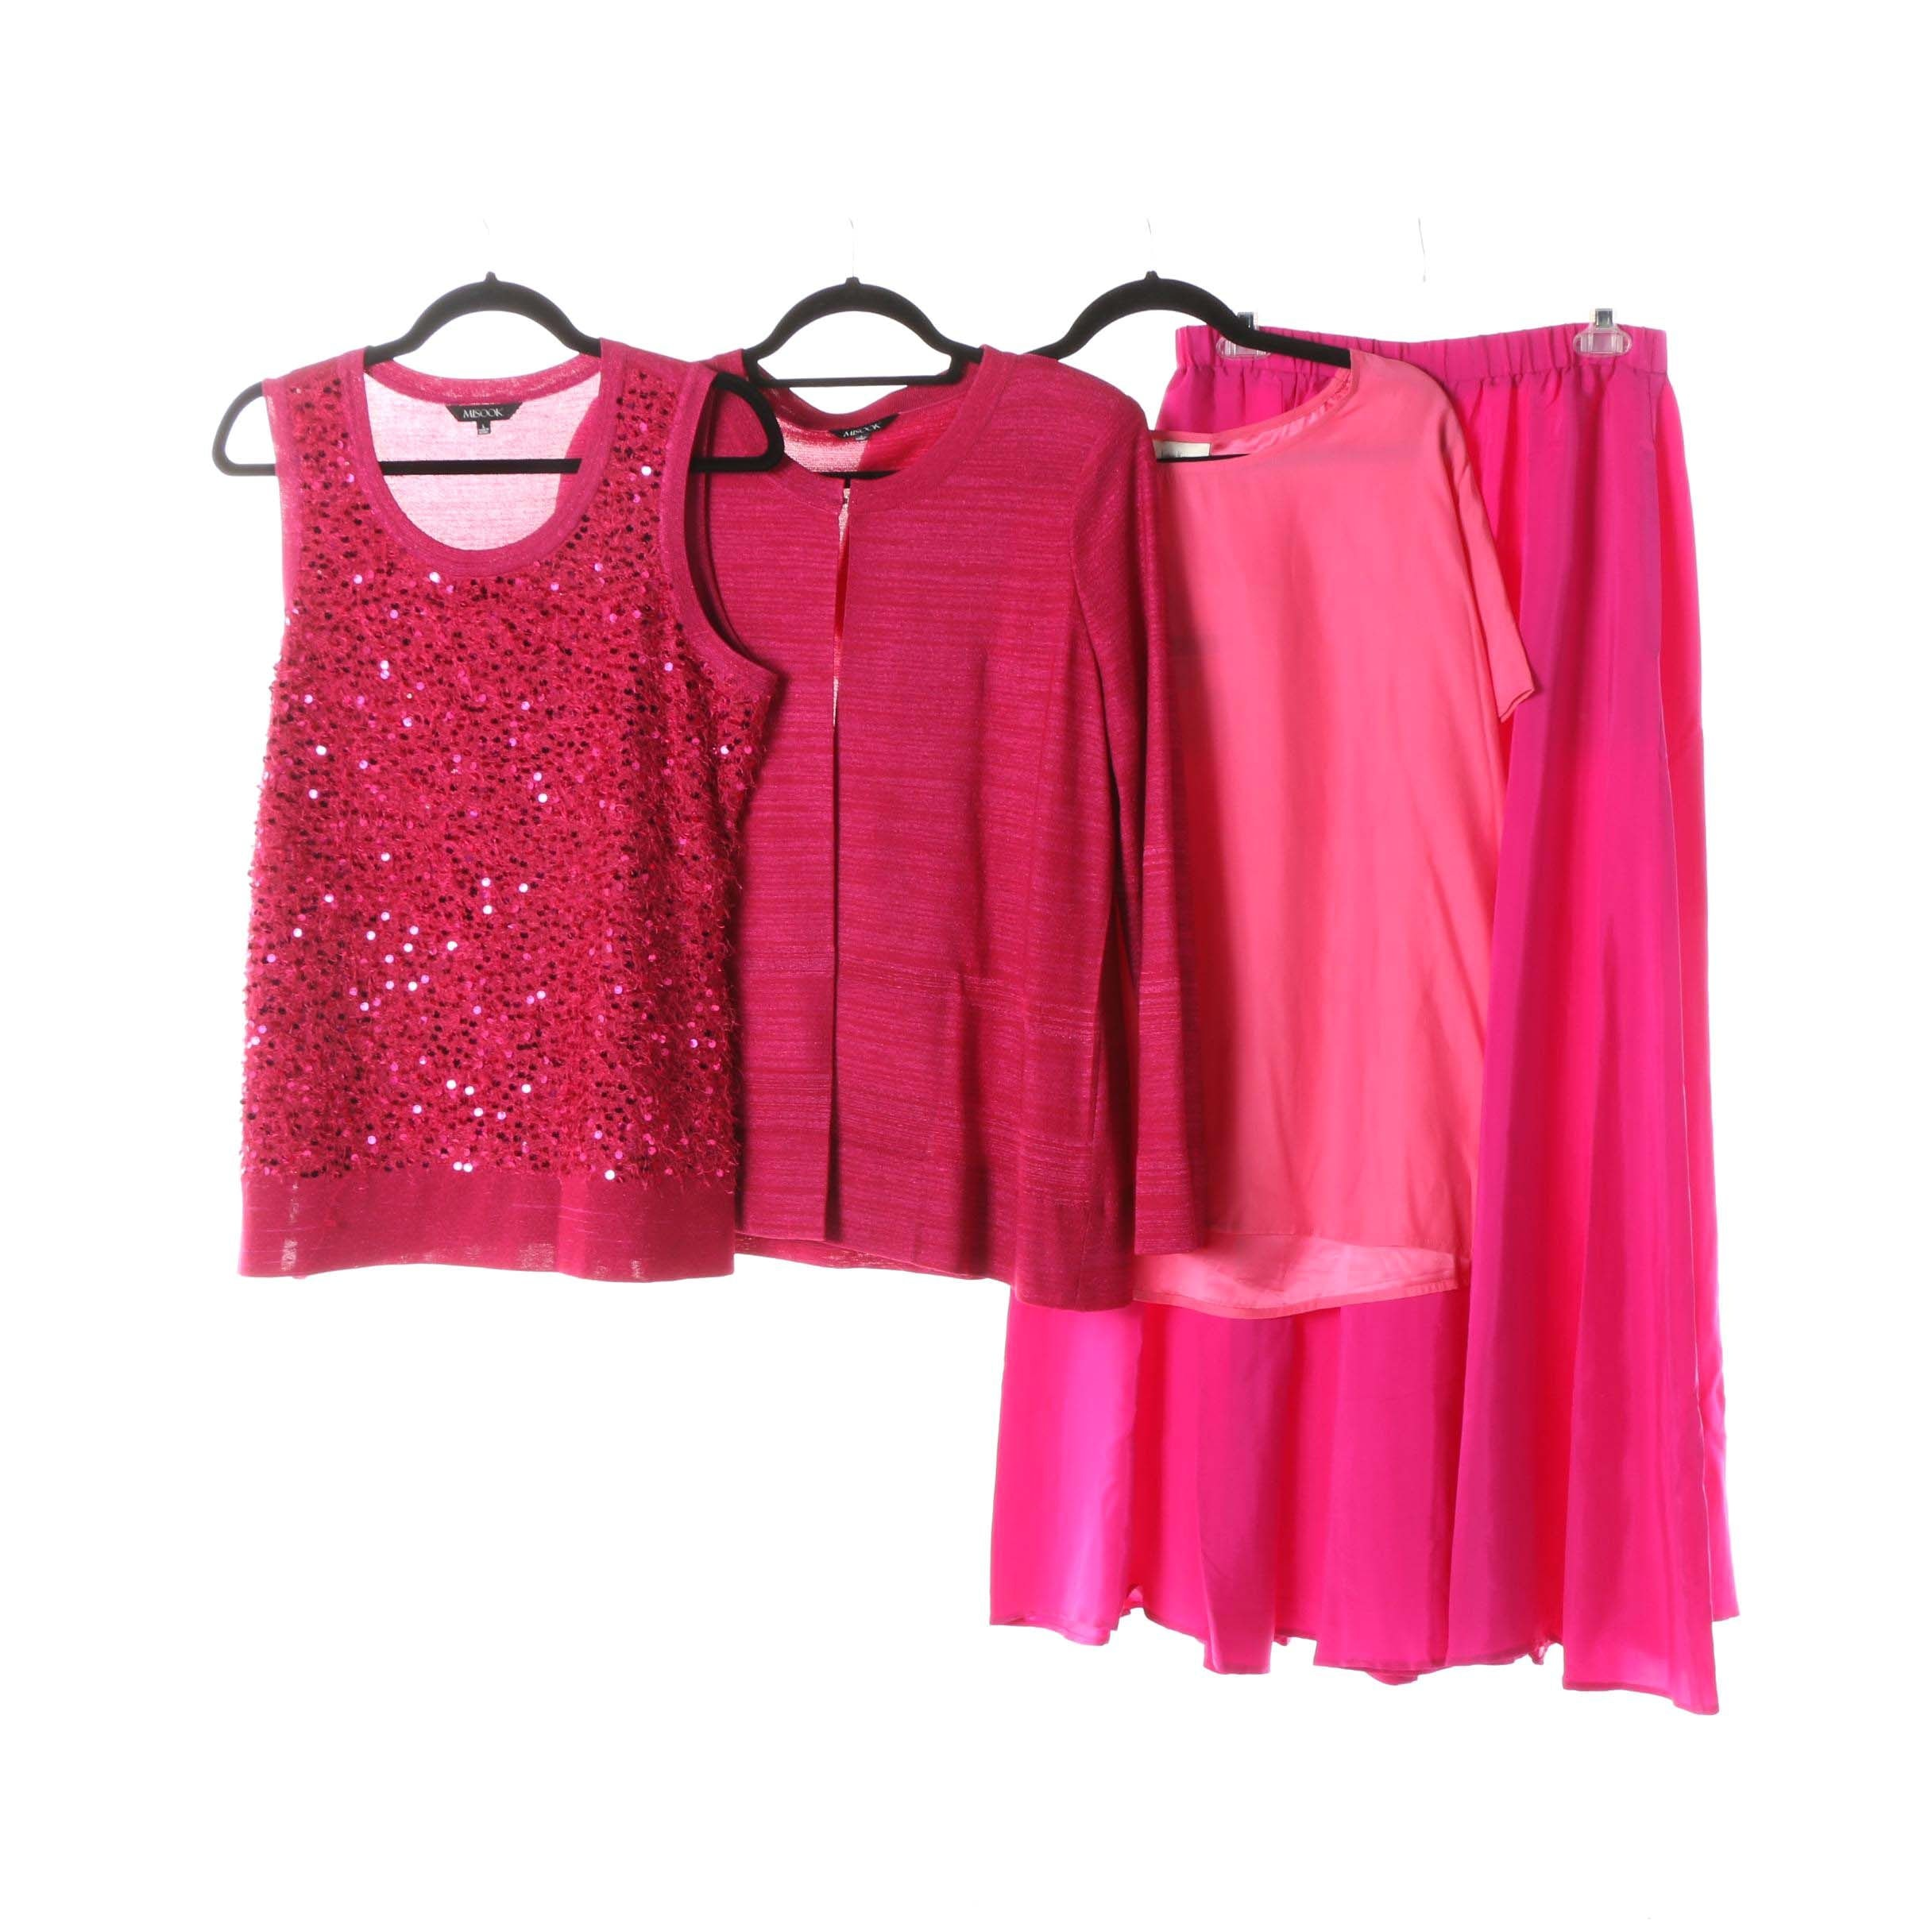 Women's Misook and Neiman Marcus Exclusive Tops and Skirt in Shades of Pink